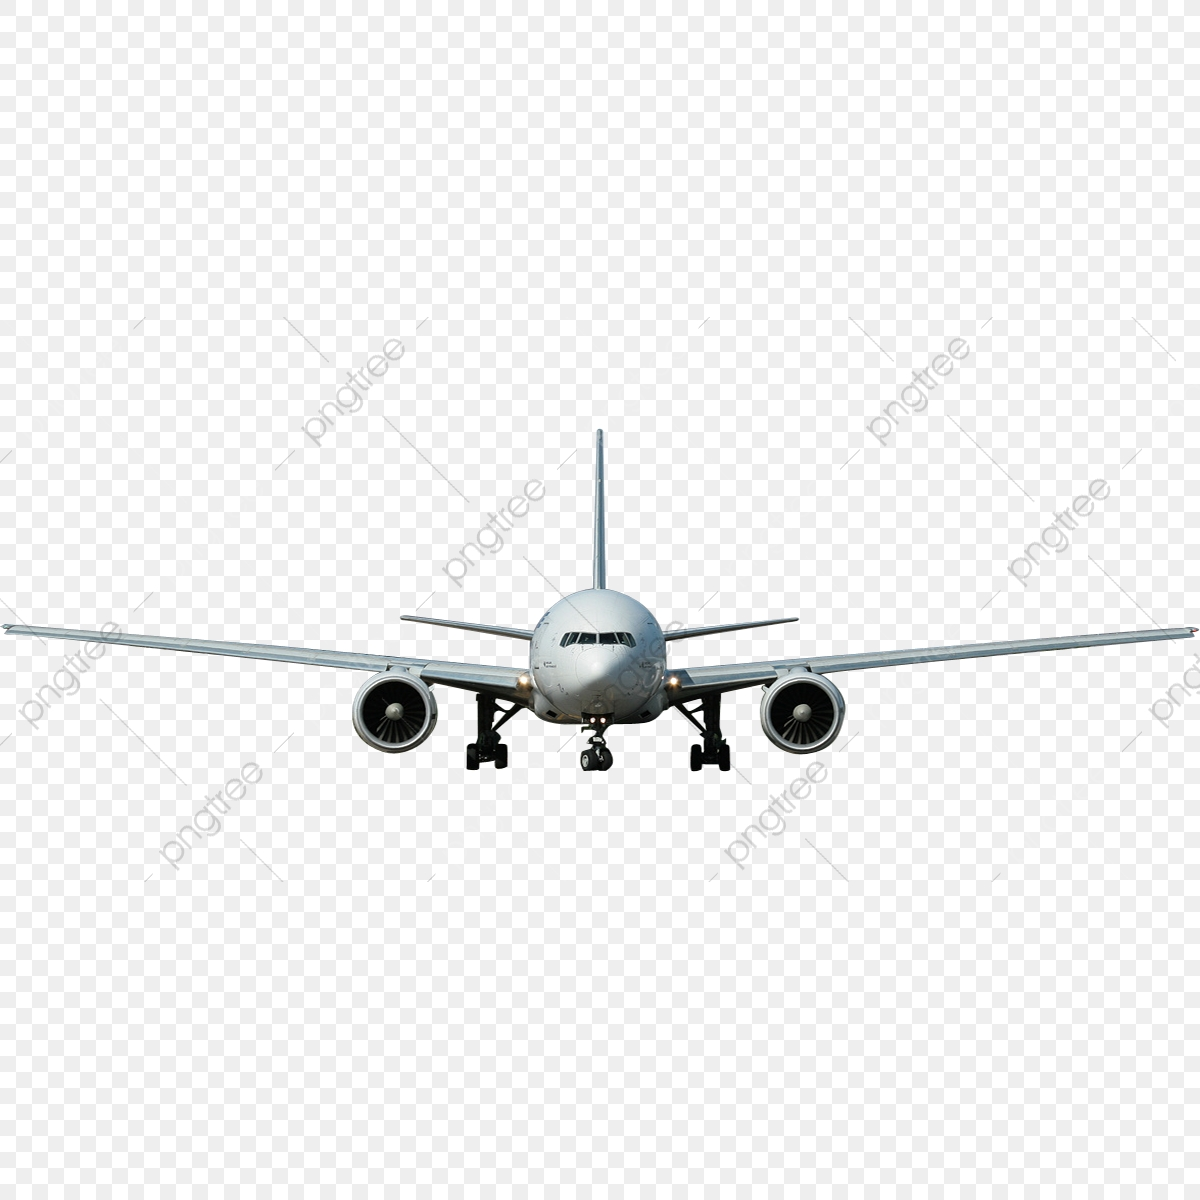 Plane Front, Png, Plane, Airplane PNG Transparent Clipart Image and.